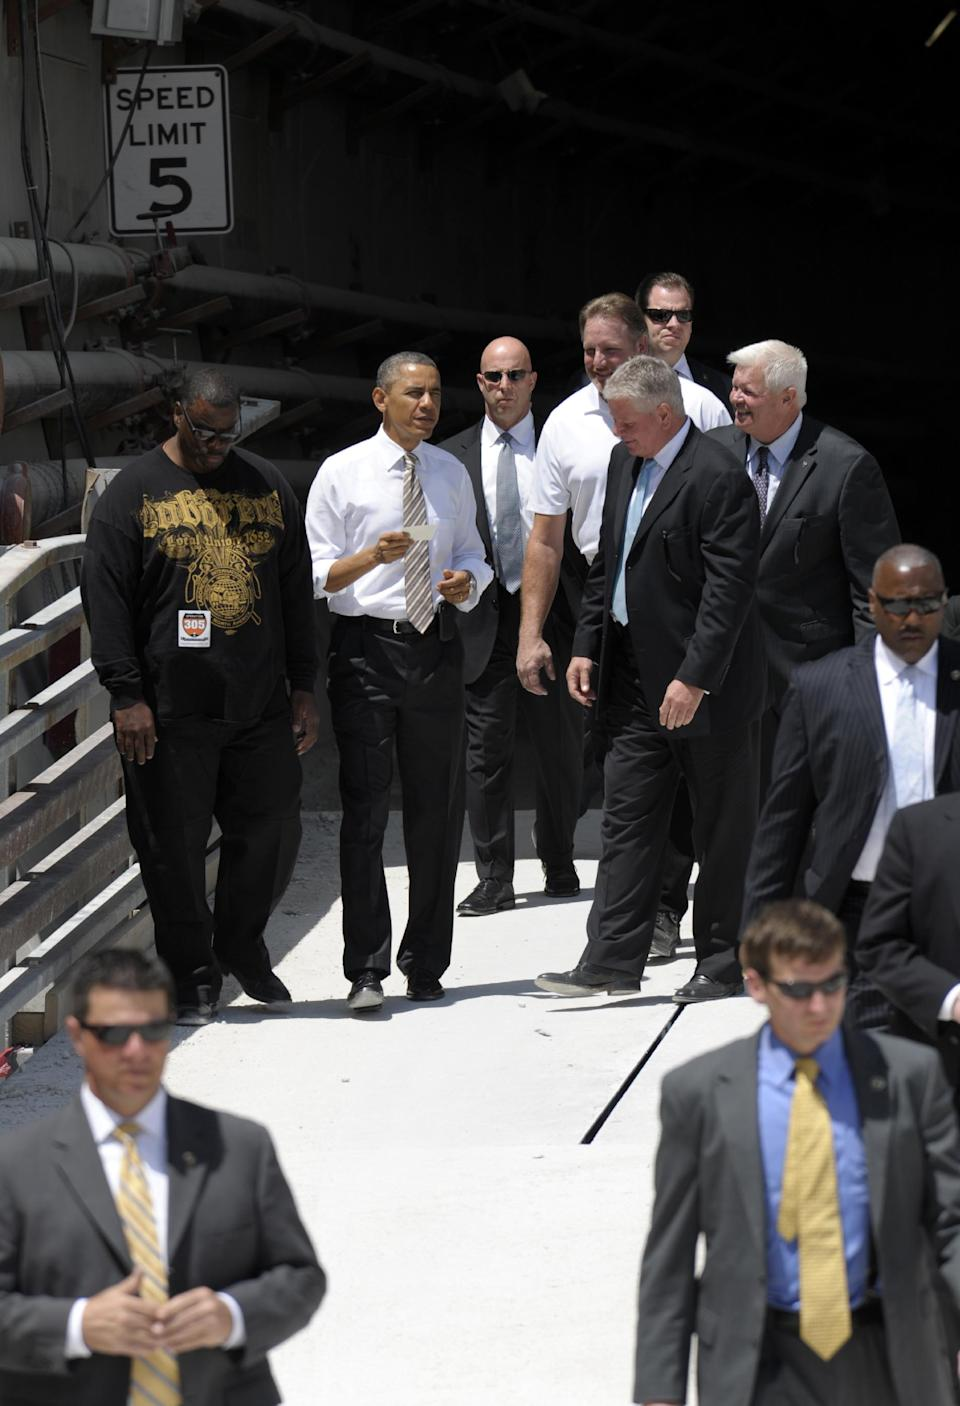 President Barack Obama tours a tunnel project at the Port of Miami, Friday, March 29, 2013, while promoting a plan to create jobs by attracting private investment in highways and other public works. (AP Photo/Susan Walsh)